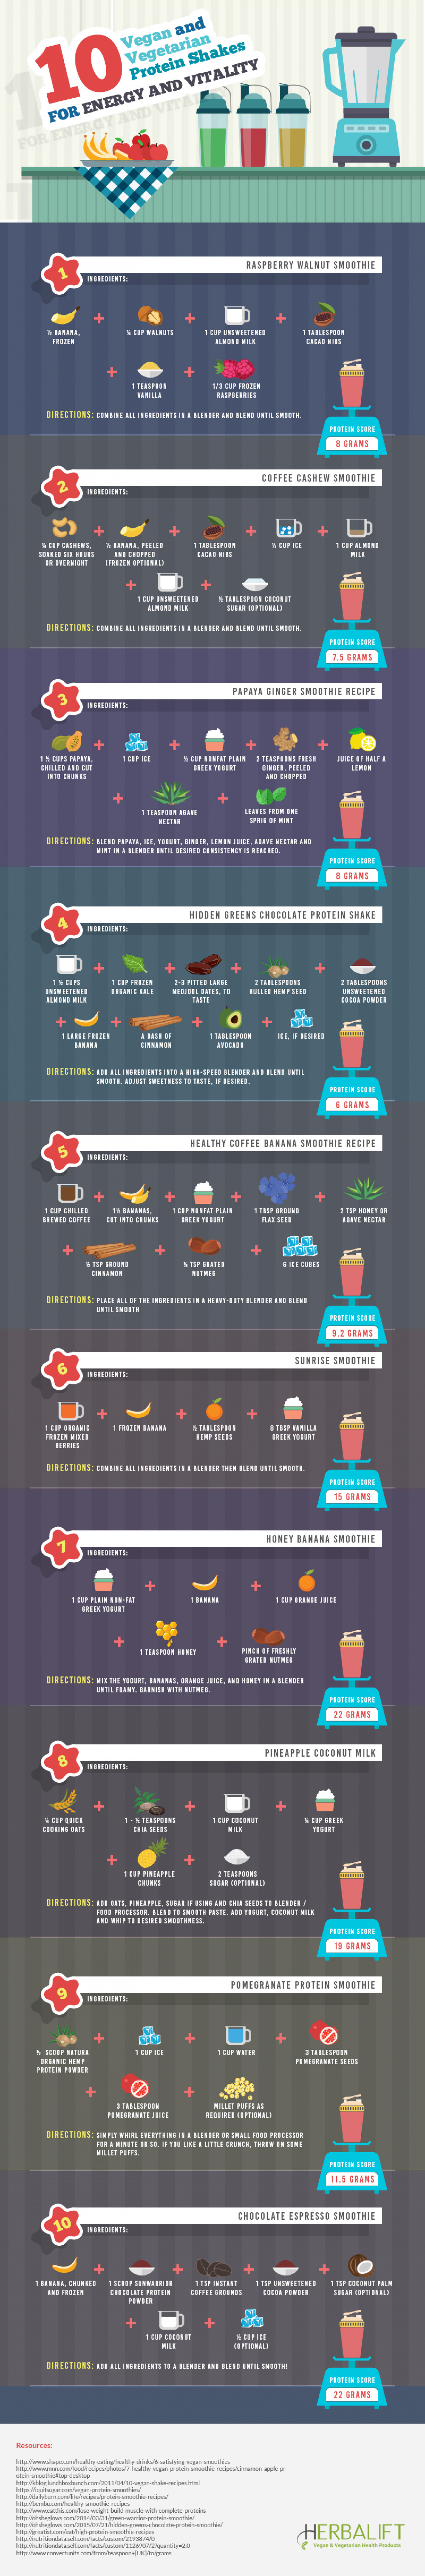 10 Smoothies for Energy and Vitality Infographic